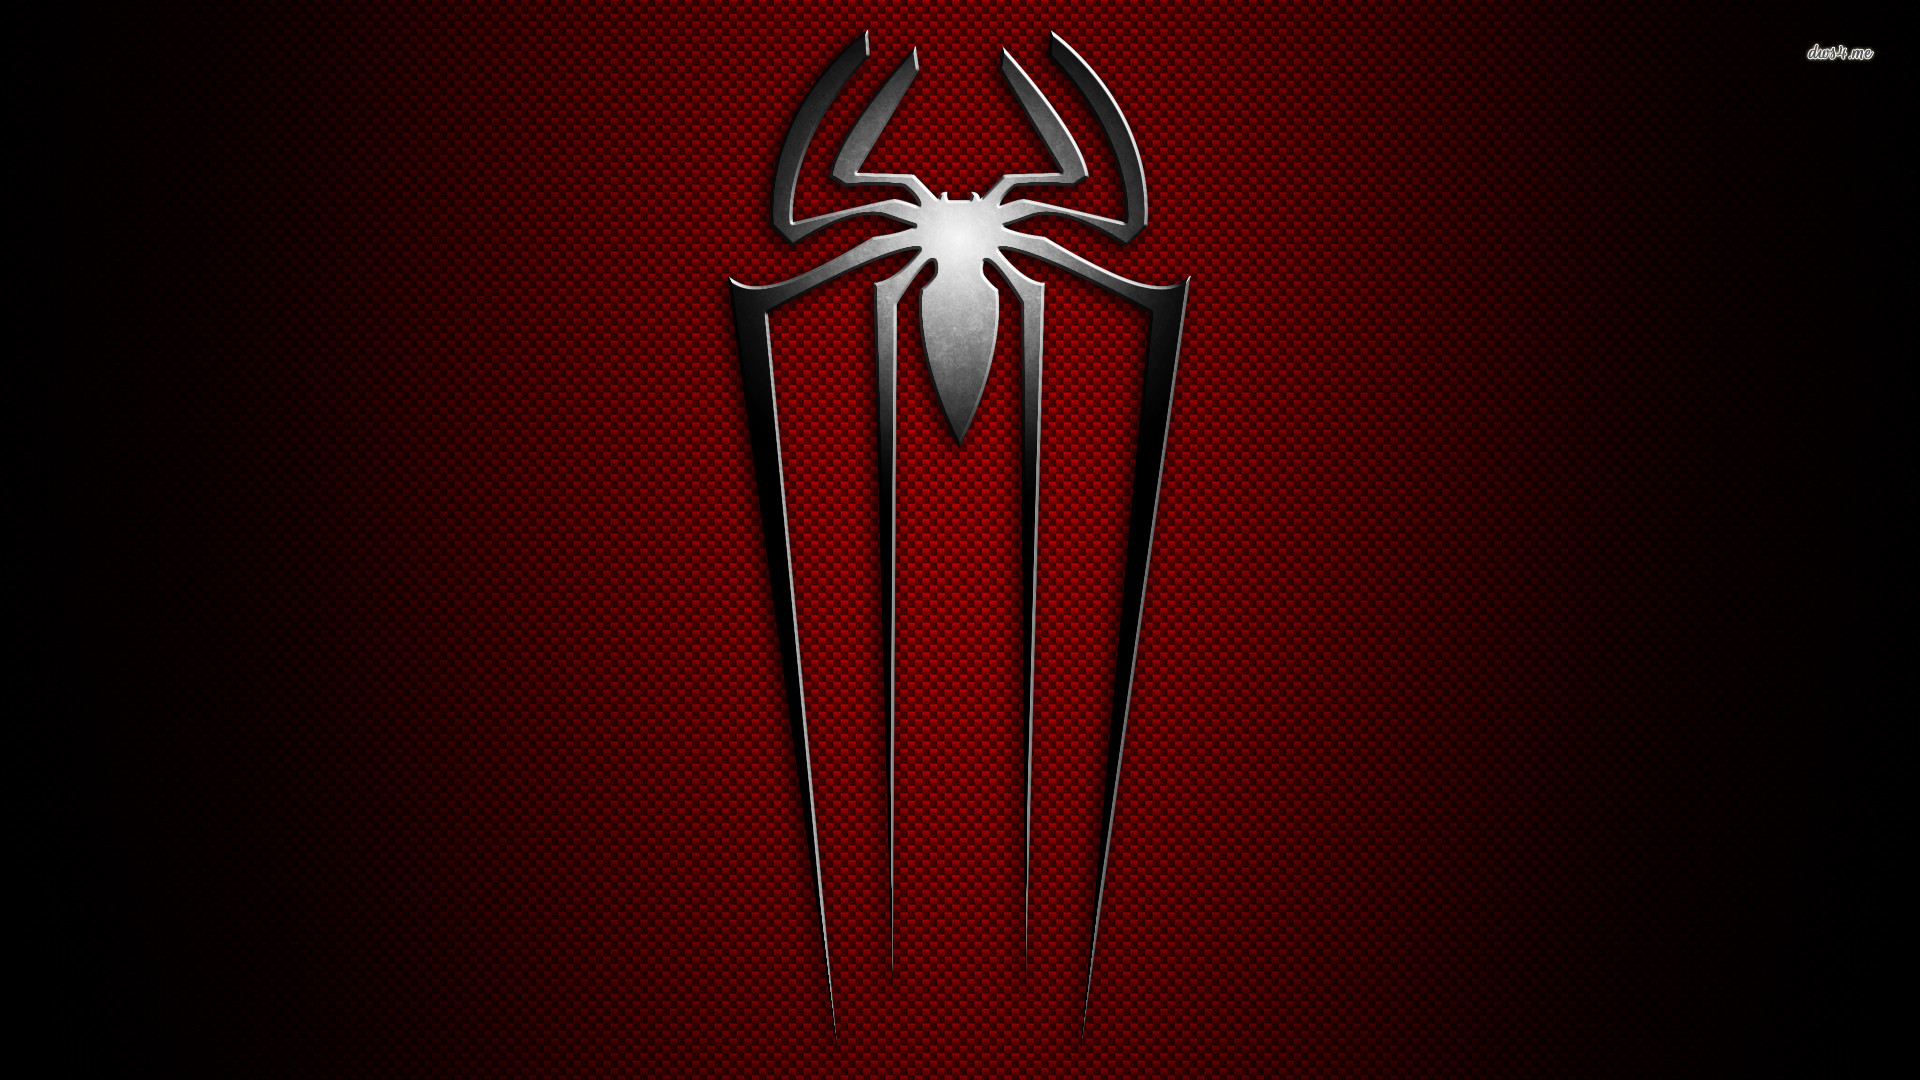 Res: 1920x1080, ... The Amazing Spider-Man metallic logo wallpaper  ...